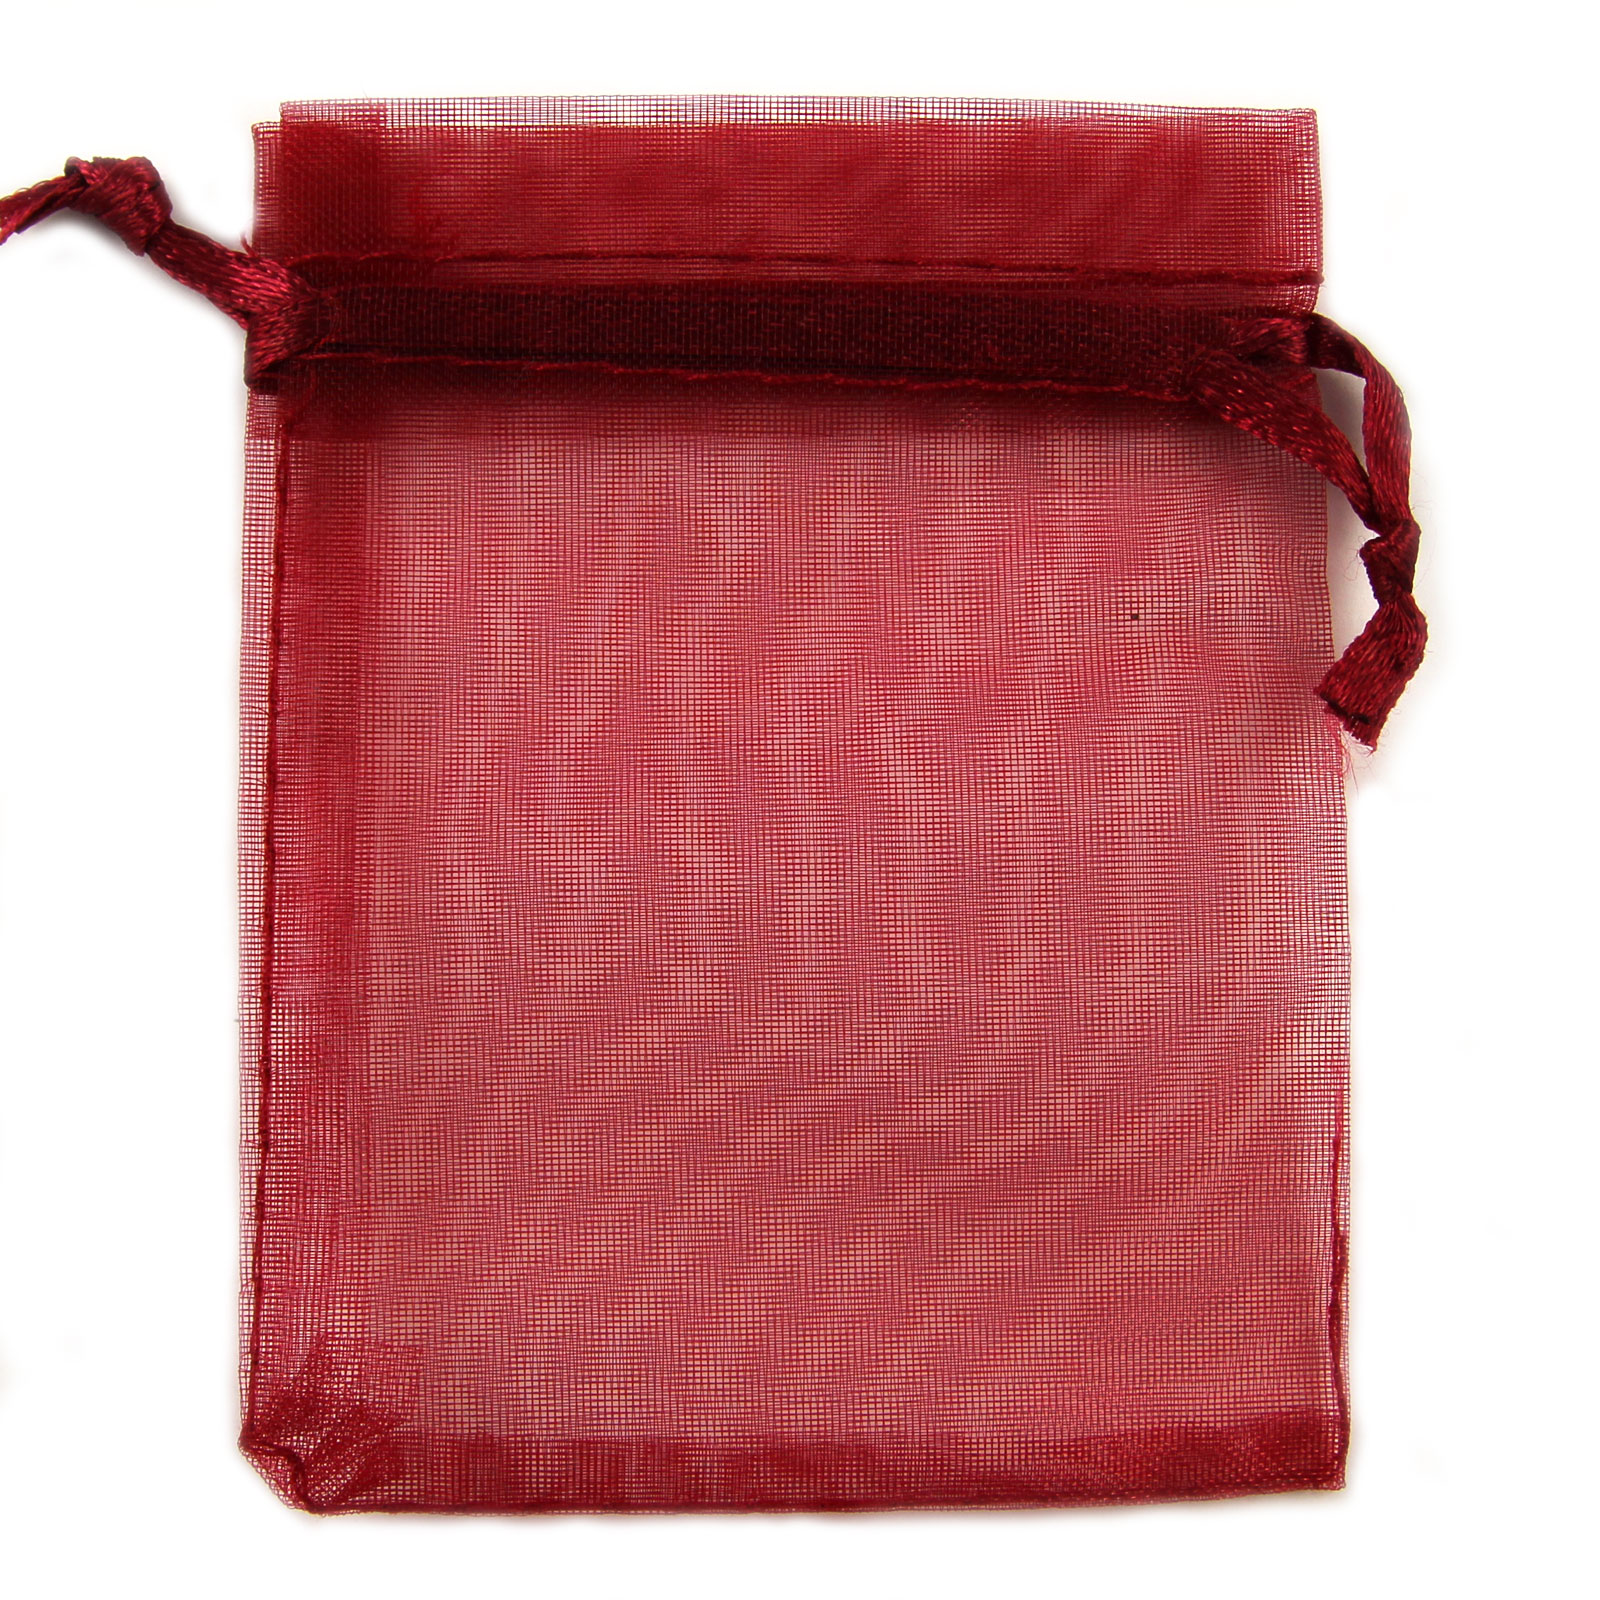 7x9cm-Premium-ORGANZA-Wedding-Favour-XMAS-GIFT-BAGS-Jewellery-Candy-Pouches